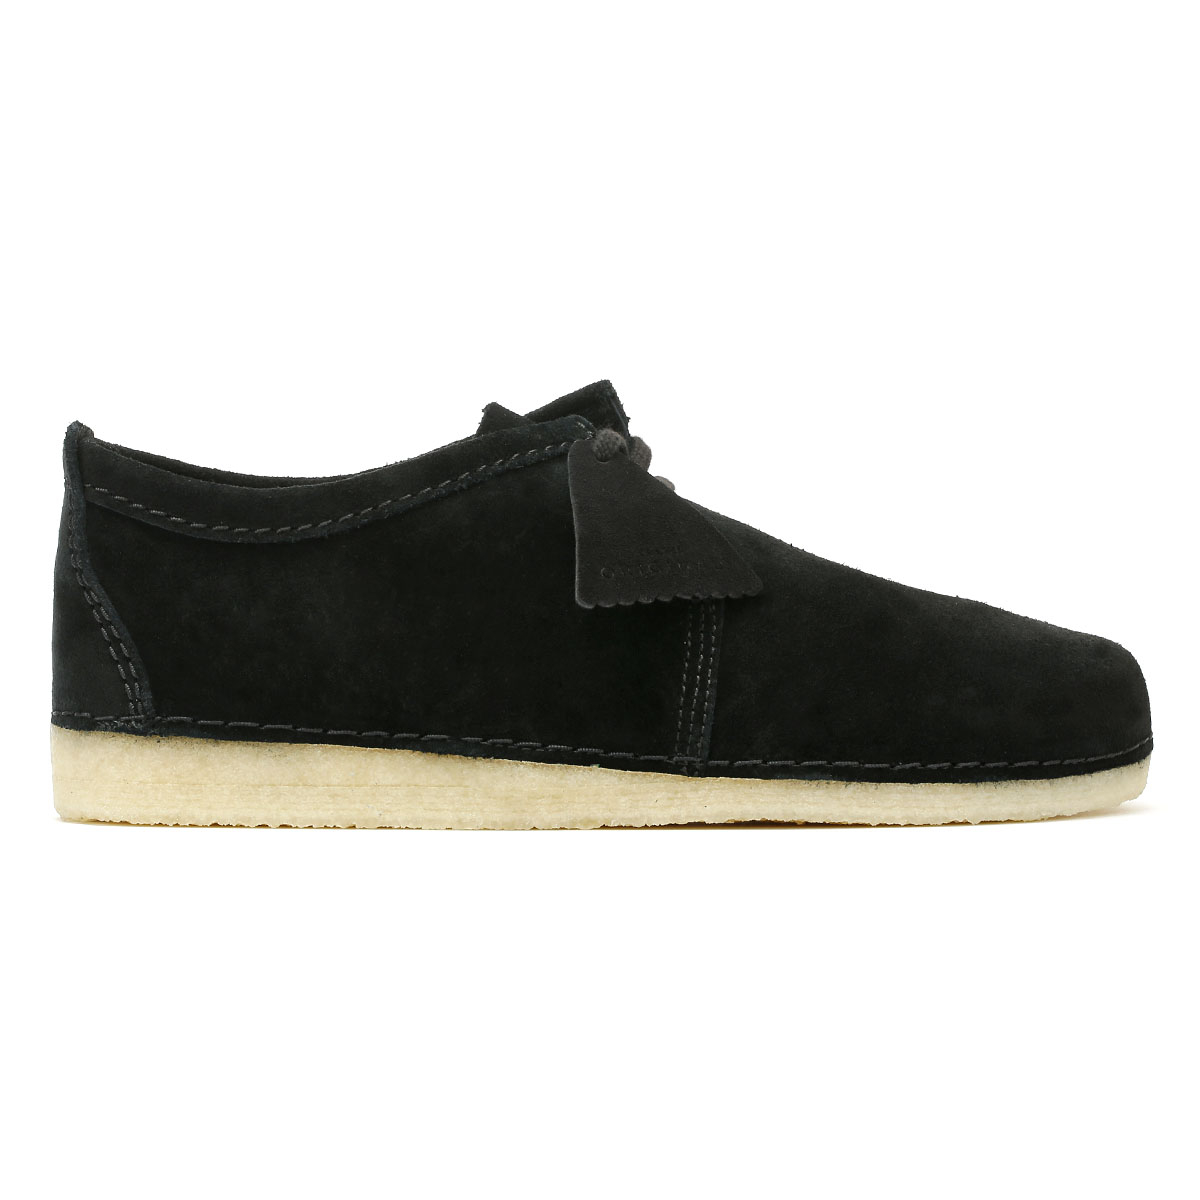 Black Originals Up Lace Clarks Ashton casuales zapatos Suede Mens PAxBq